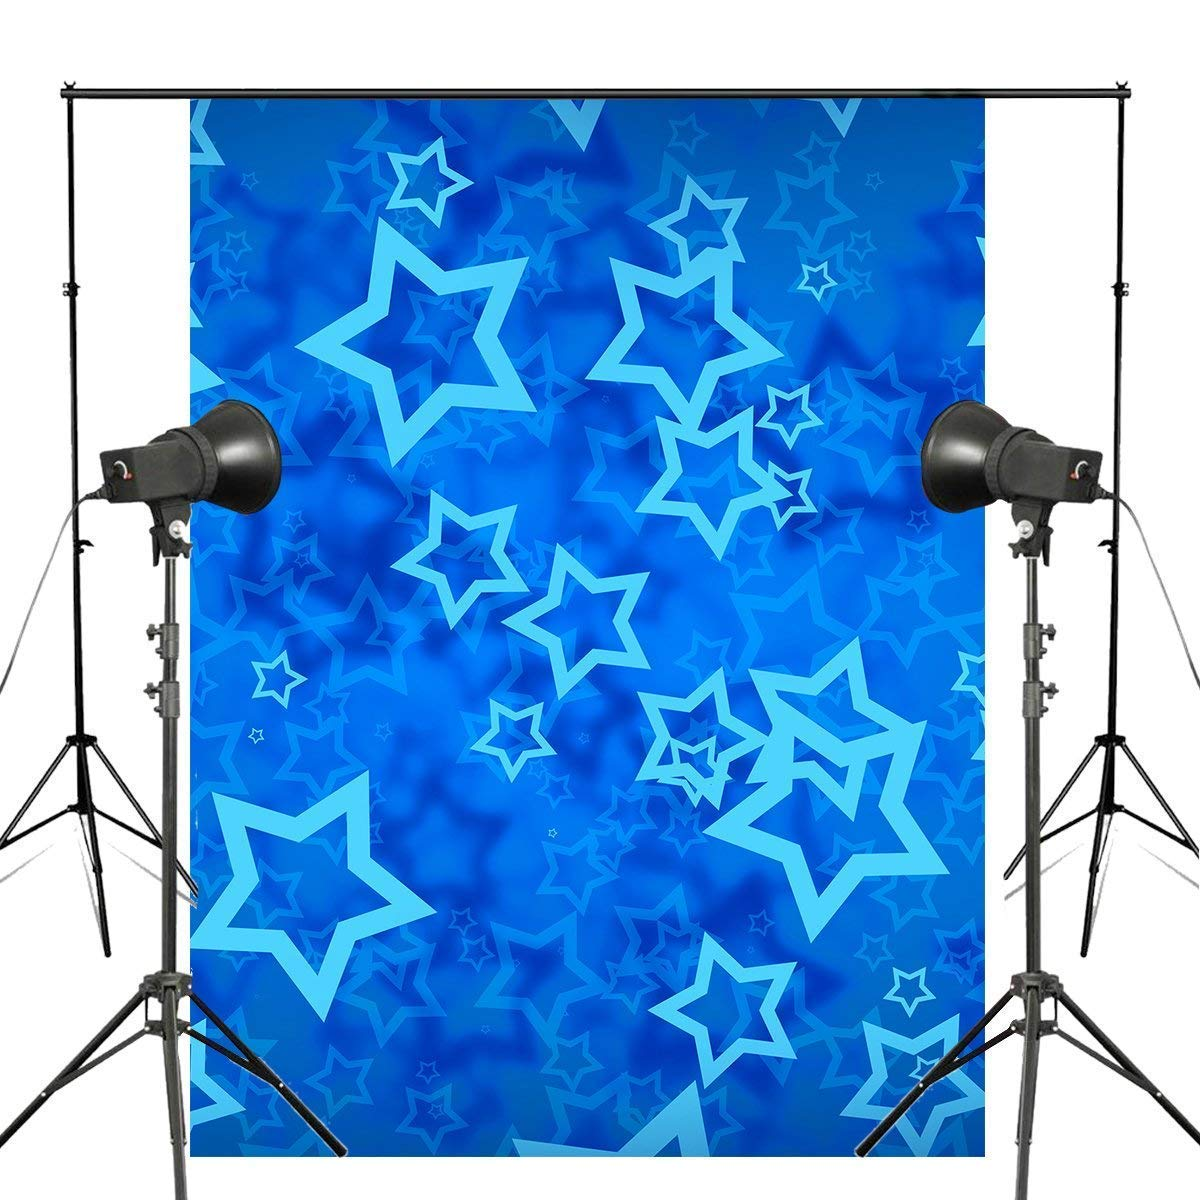 ERTIANANG Exquisite Navy Blue Star Five-Pointed Star Background Kids Photo Studio Backdrop Wall 5x7ft Bedroom Backdrop